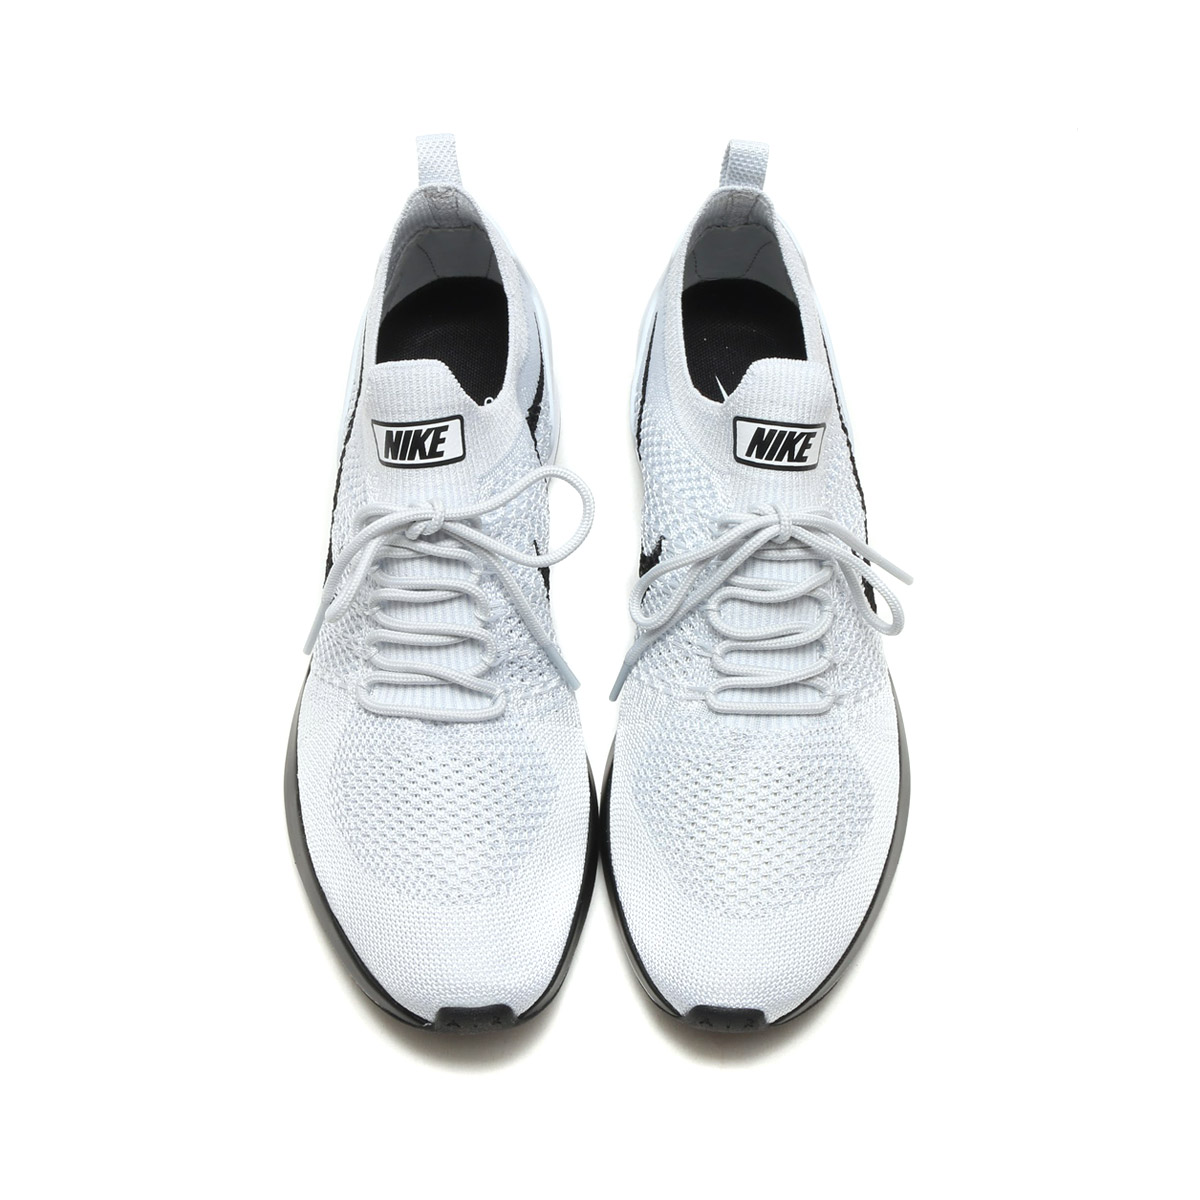 size 40 0c412 f76b6 NIKE AIR ZOOM MARIAH FLYKNIT RACER (Nike air zoom Maria fly knit racer) (PURE  PLATINUM WHITE) 17FA-S